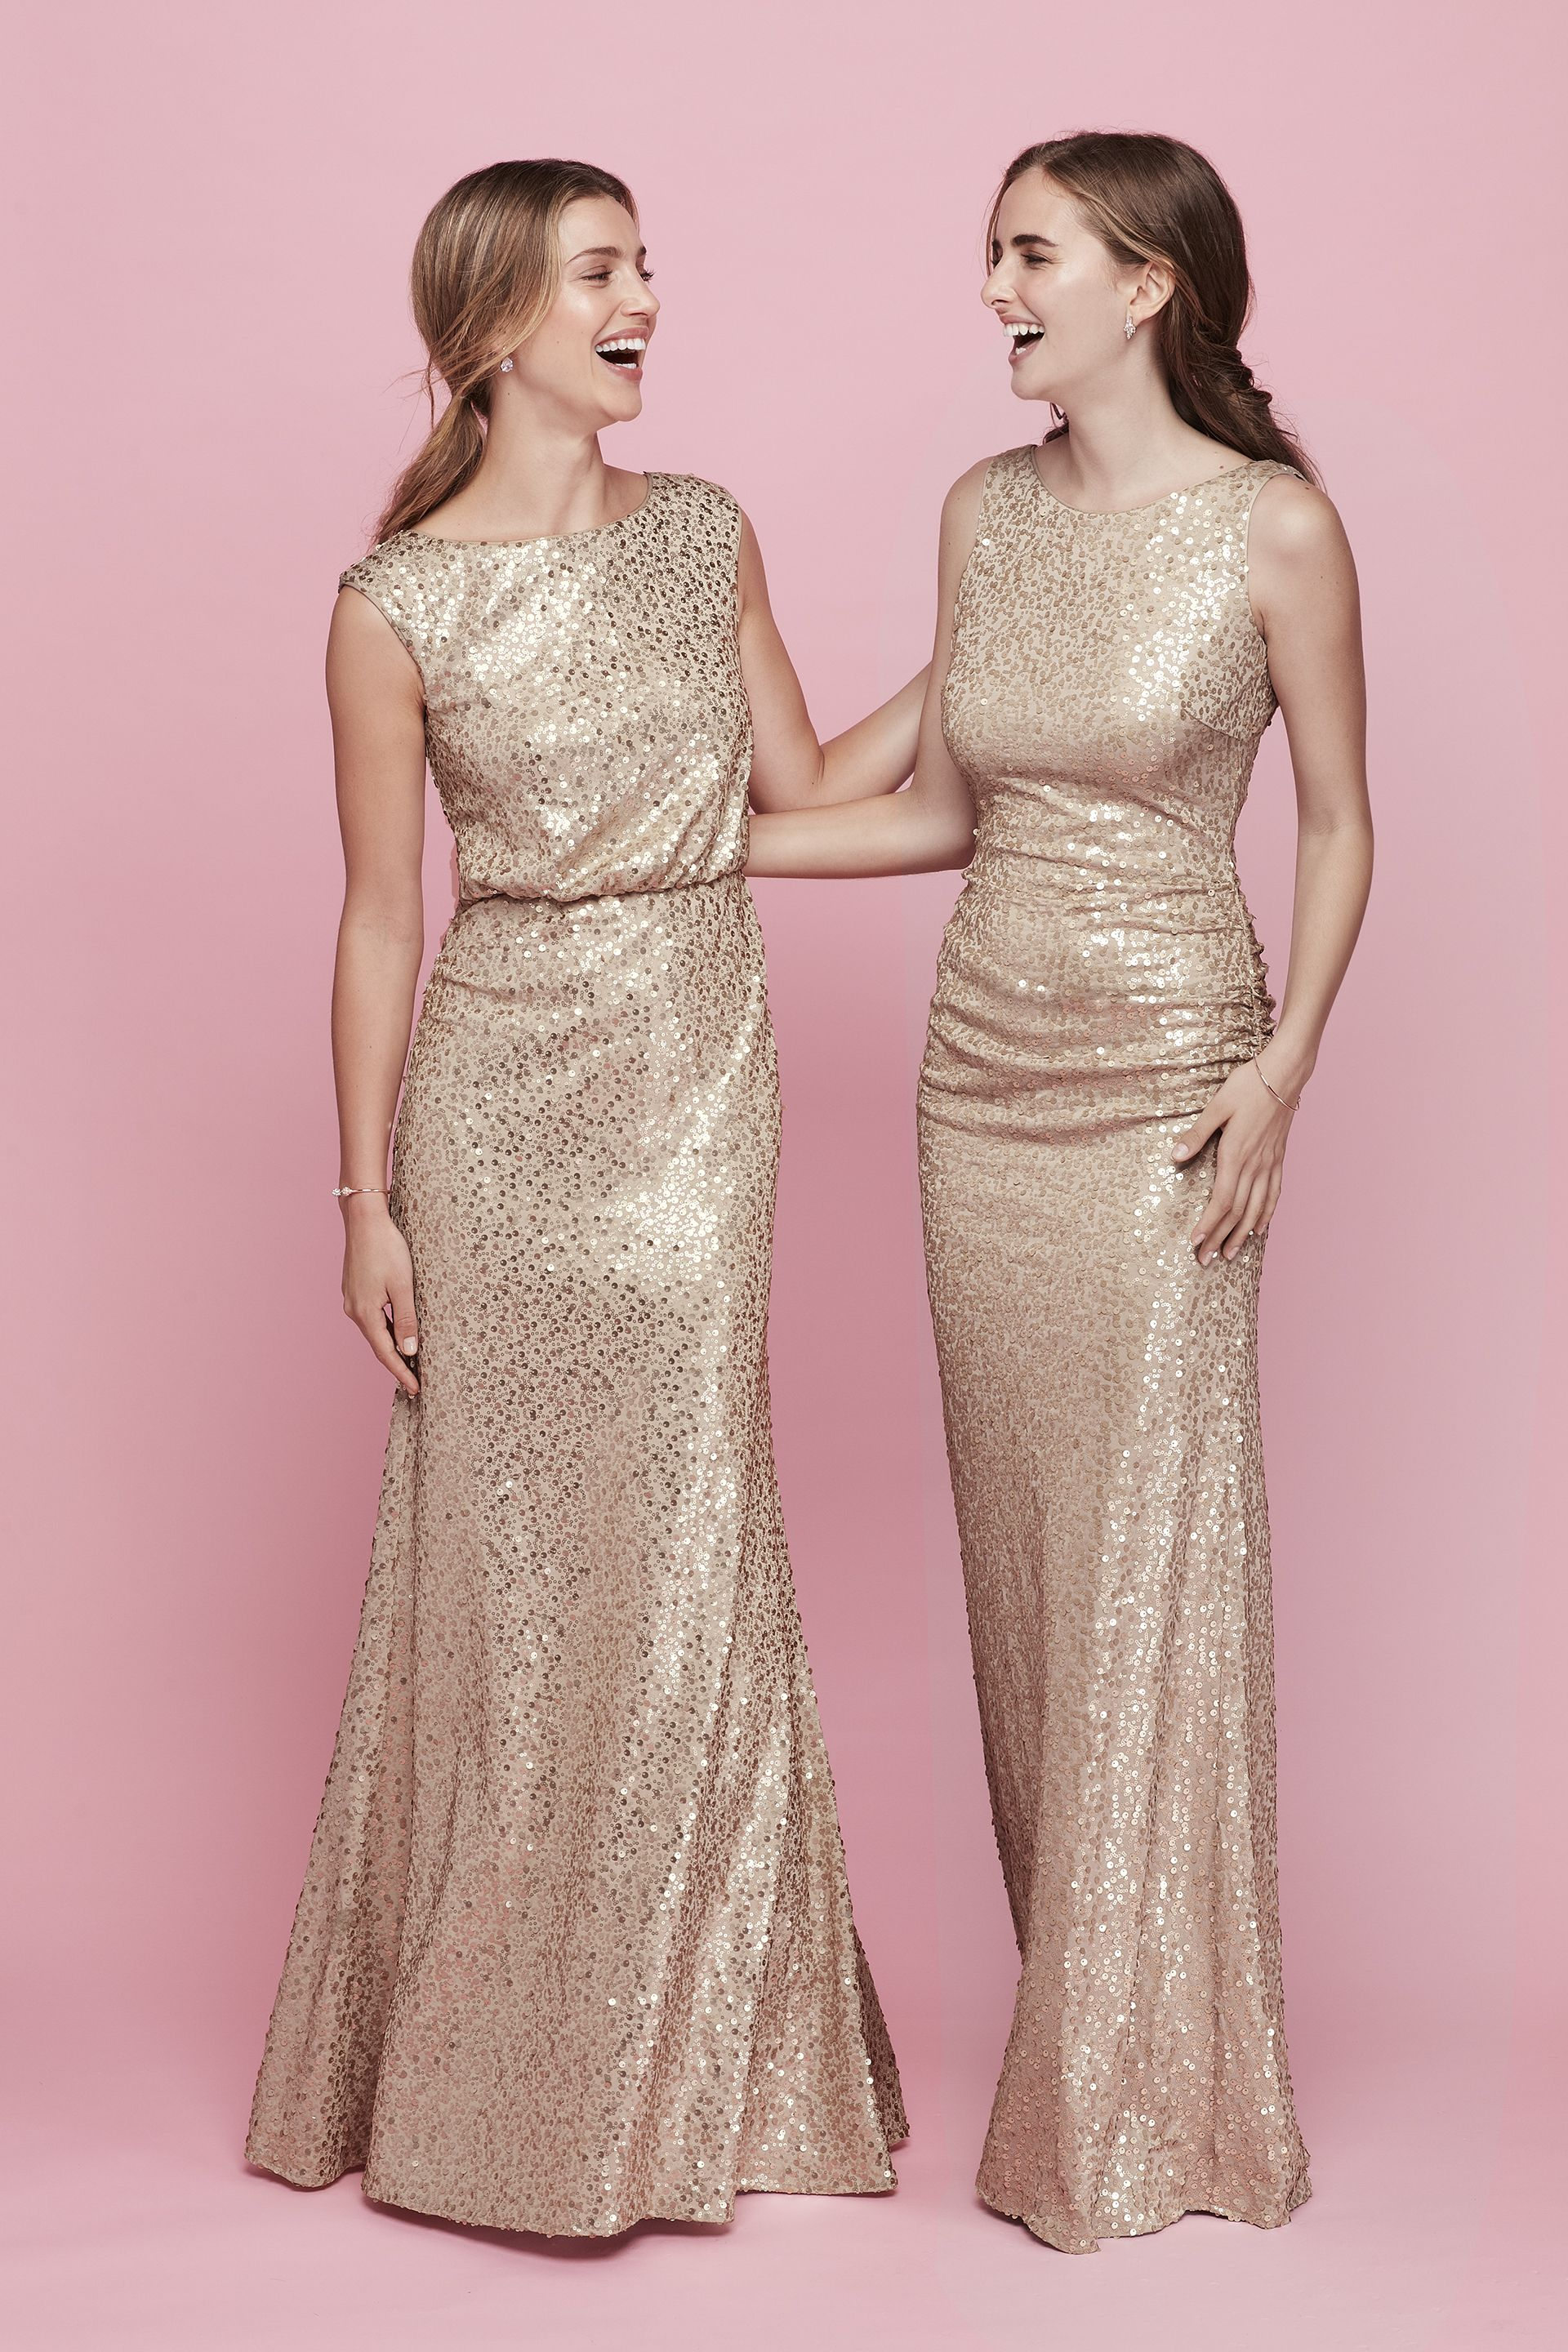 Sparkly bridesmaid dresses, glittery dresses | Wedding Dresses ...